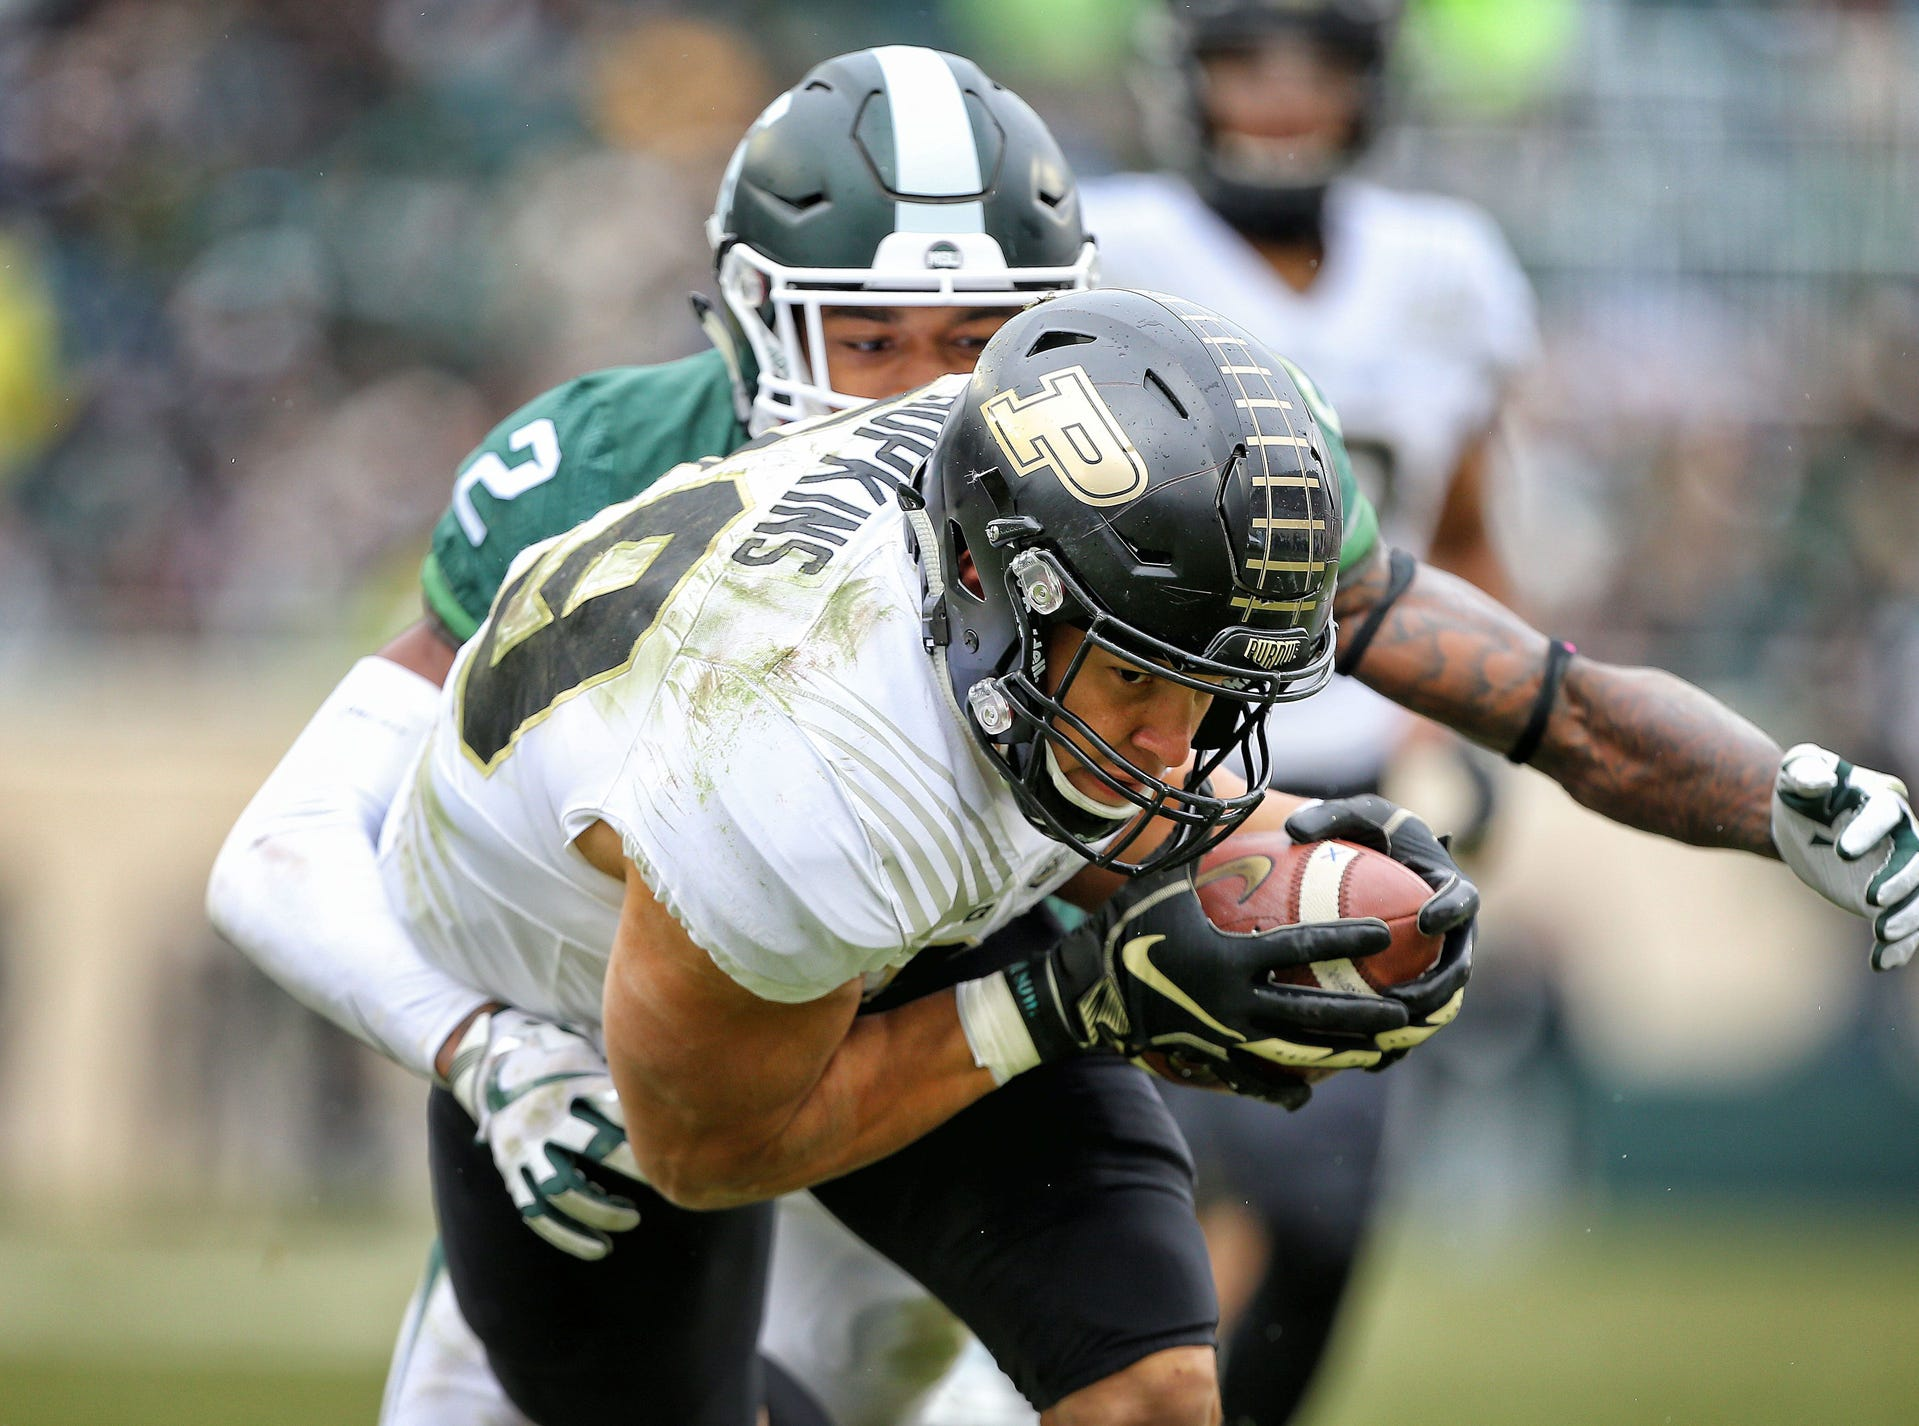 Purdue Boilermakers tight end Brycen Hopkins (89) runs for yards after a catch against Michigan State Spartans cornerback Justin Layne (2) during the second half at Spartan Stadium.